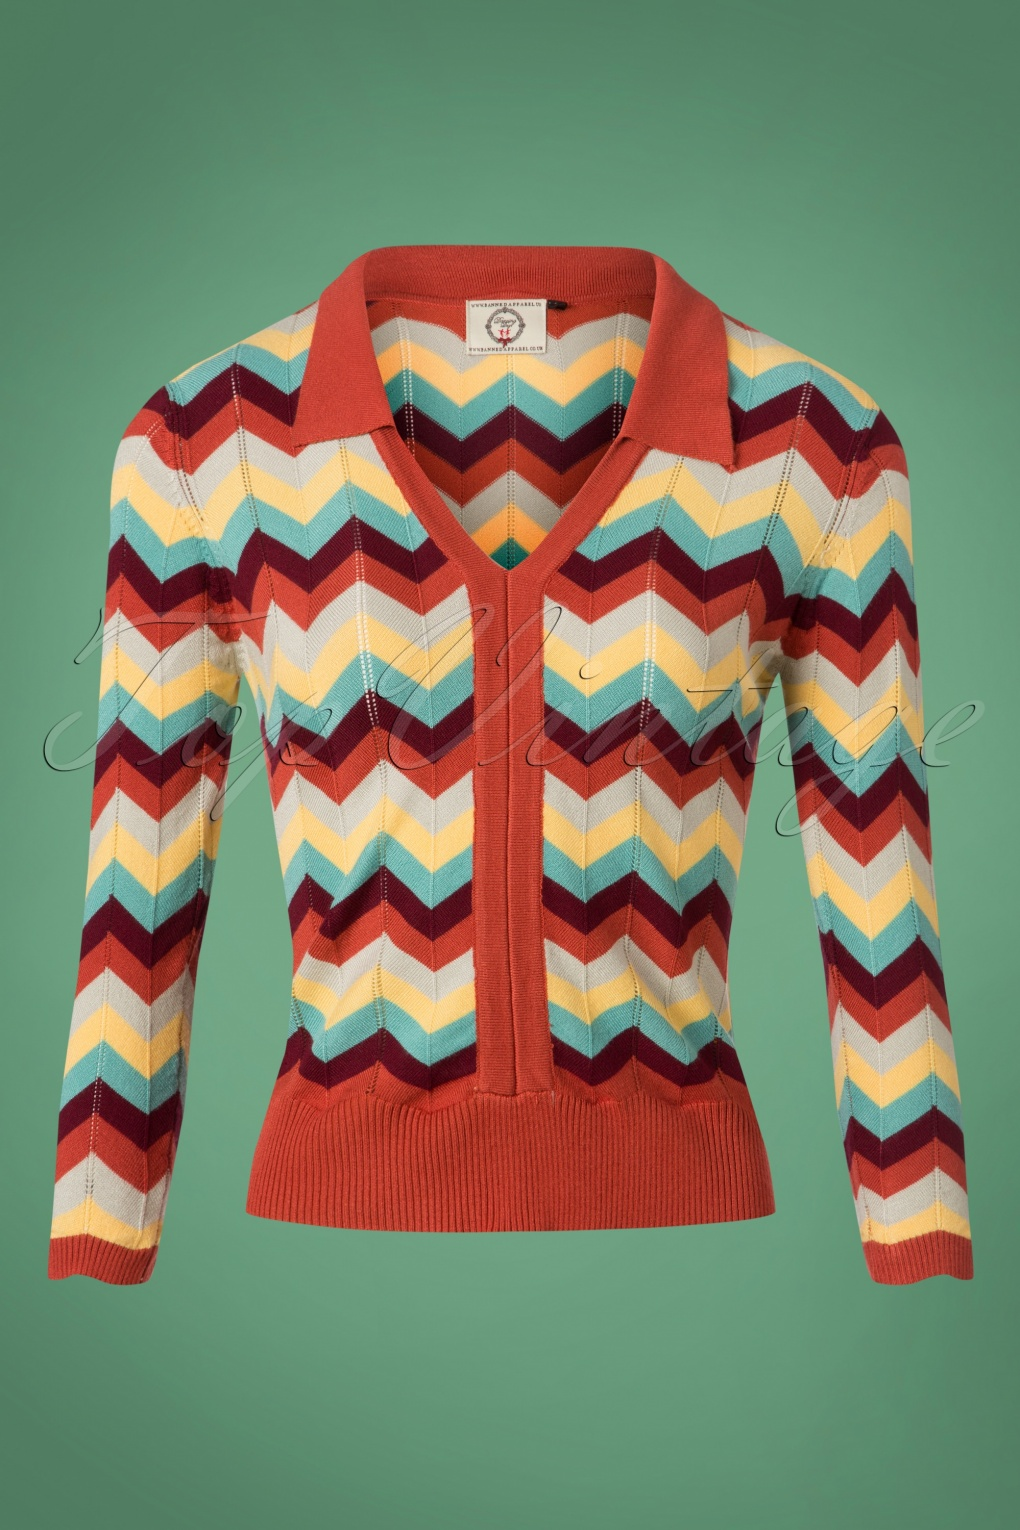 Women's 70s Shirts, Blouses, Hippie Tops 60s Zoe Zig Zag Collar Top in Earth and Aqua £39.36 AT vintagedancer.com